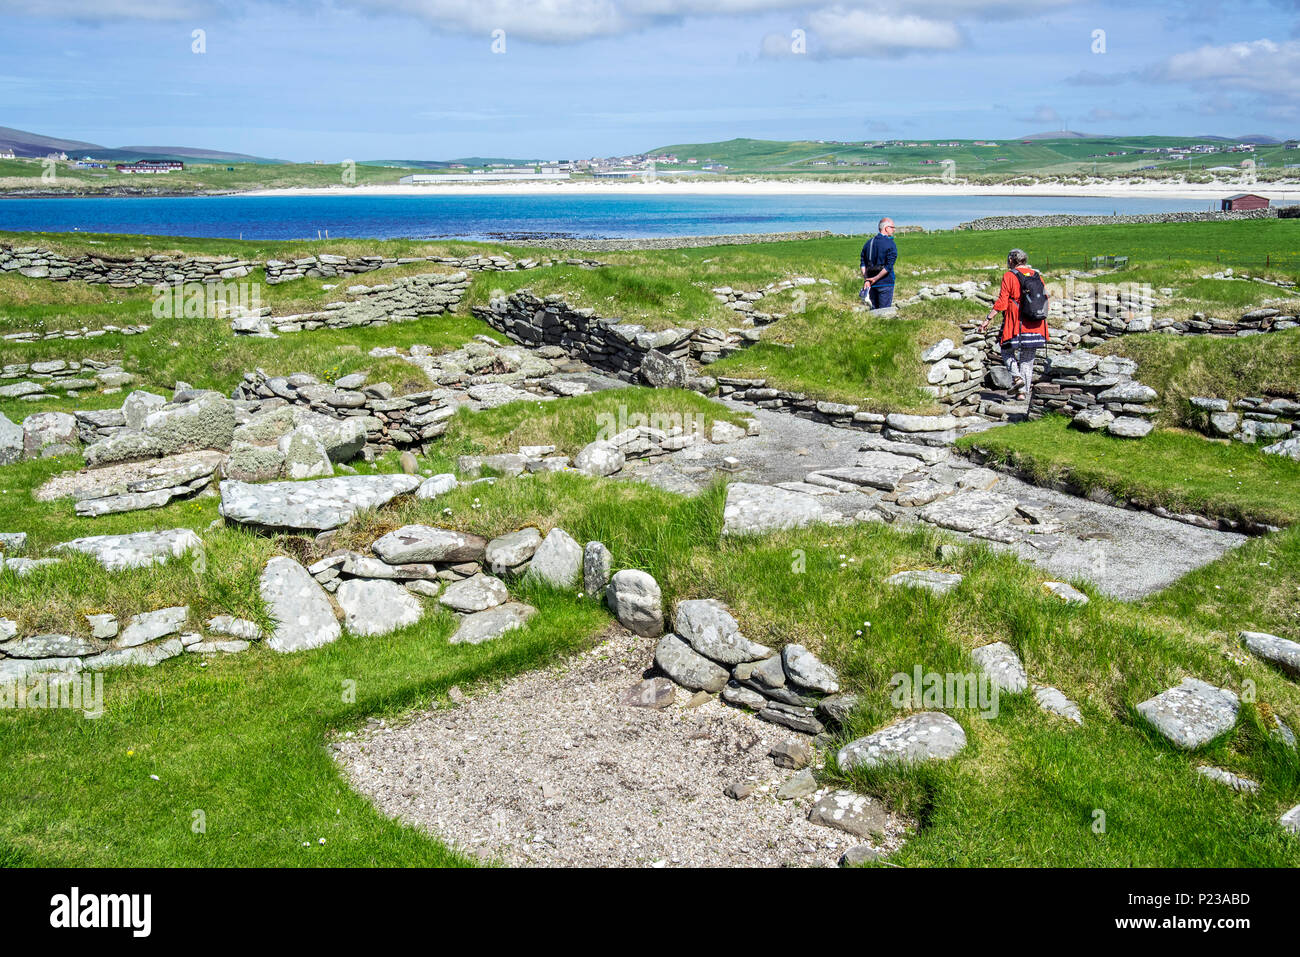 Tourists visiting Jarlshof, archaeological site showing 2500 BC prehistoric and Norse settlements at Sumburgh Head, Shetland Islands, Scotland, UK - Stock Image